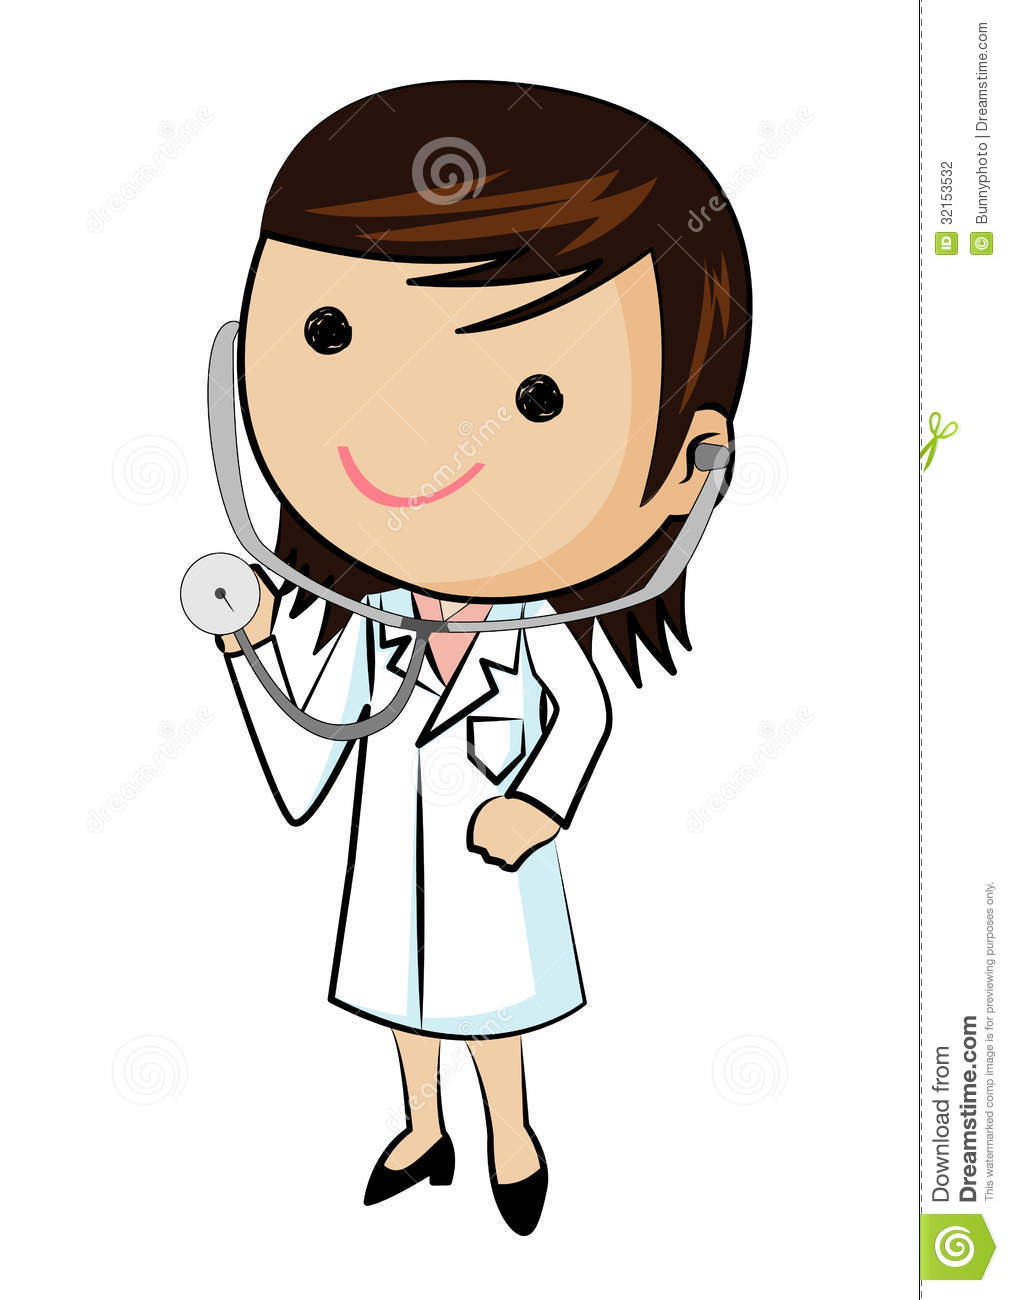 Wearing panda free images. Clipart doctor female doctor